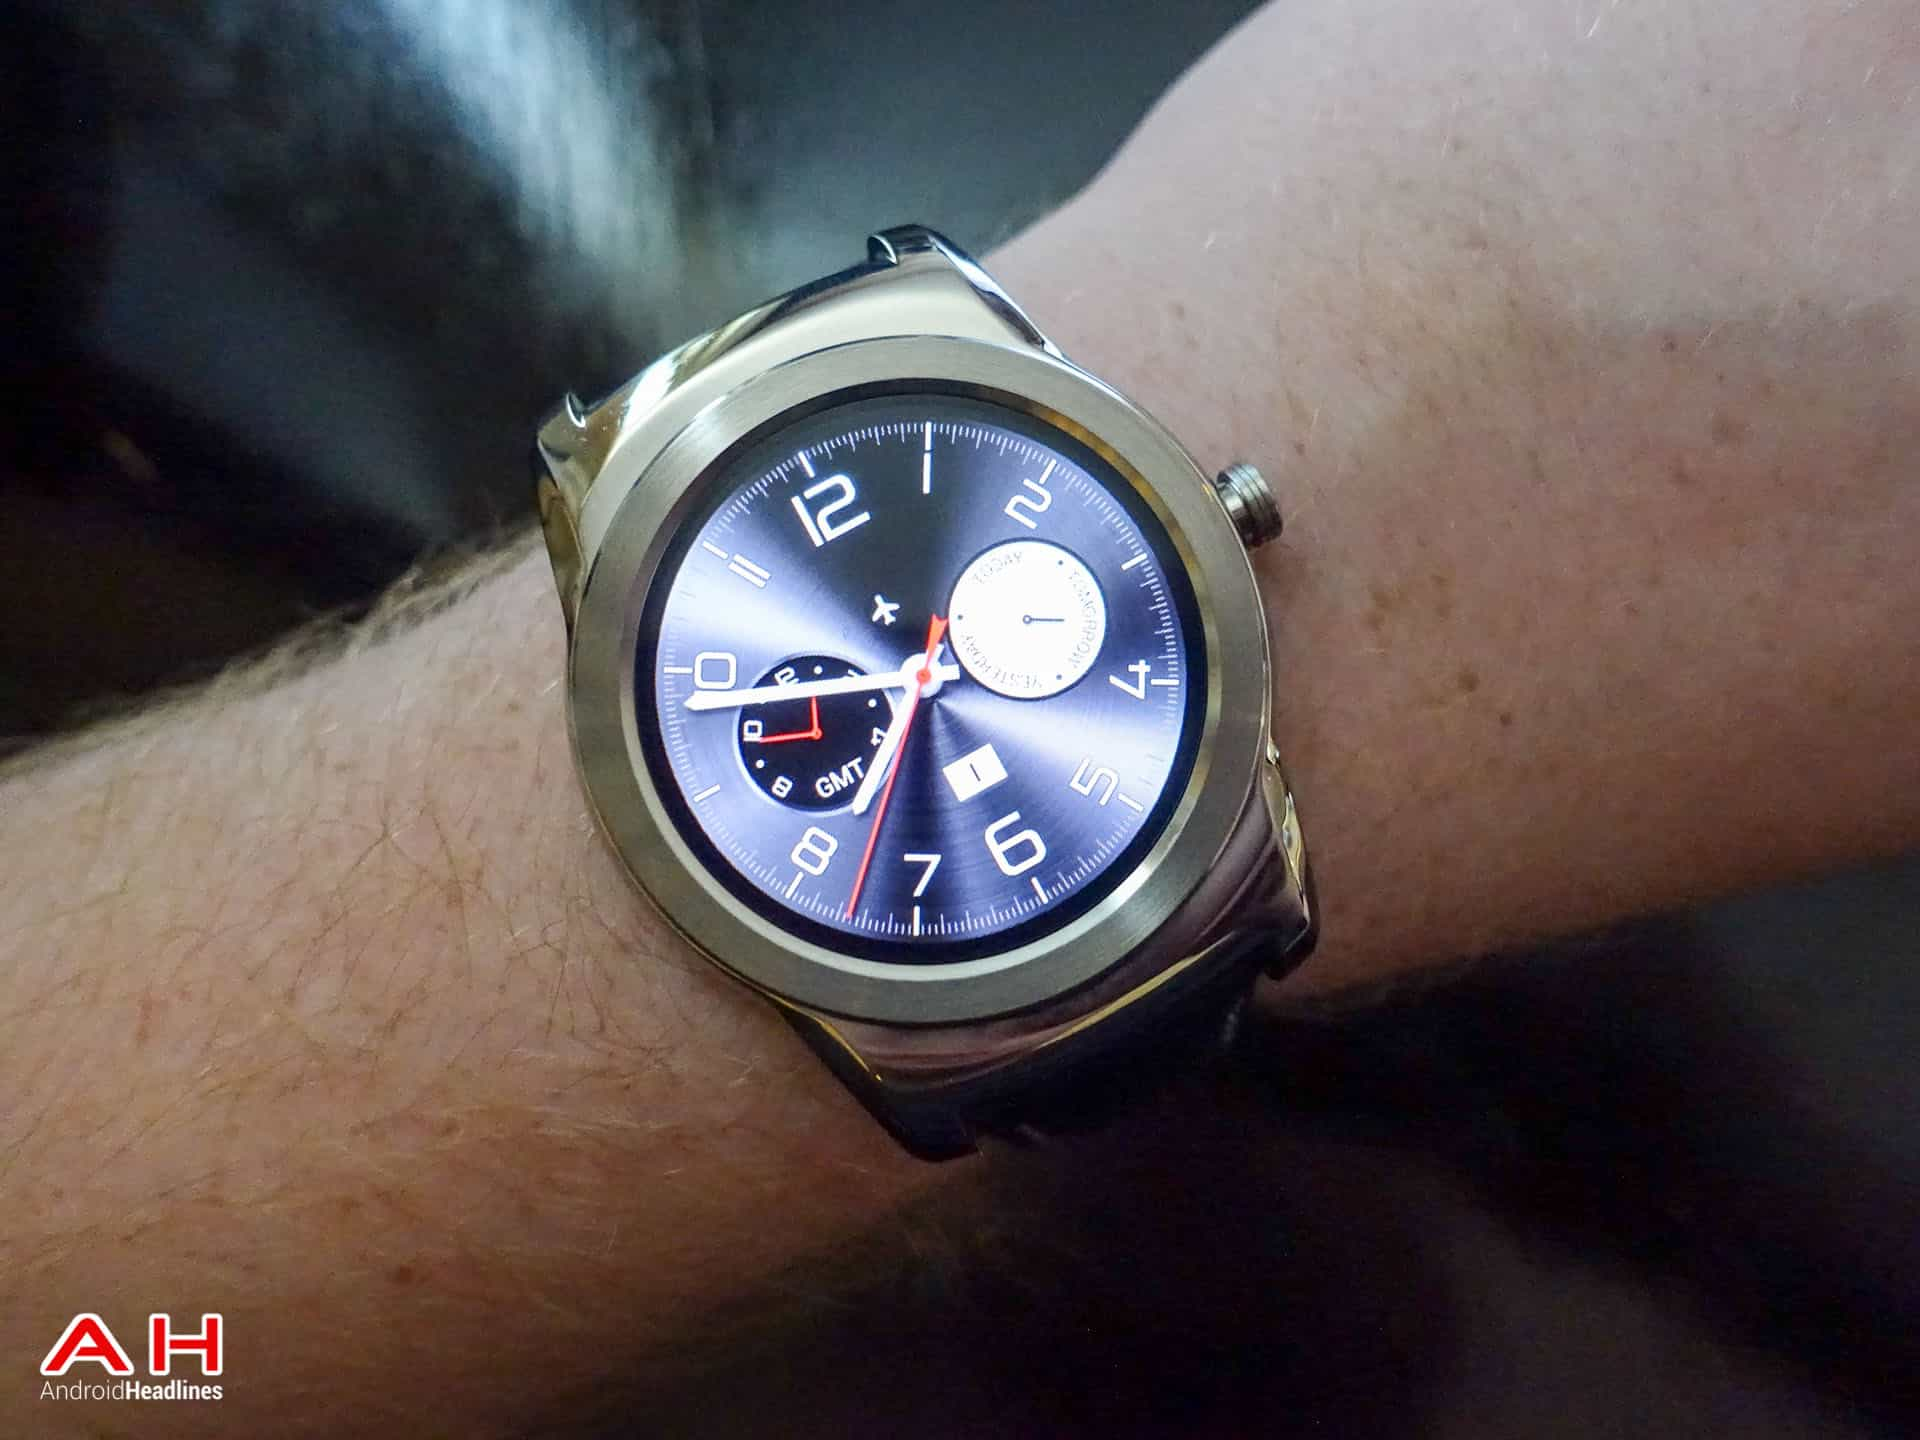 LG Watch Urbane Review AH 11